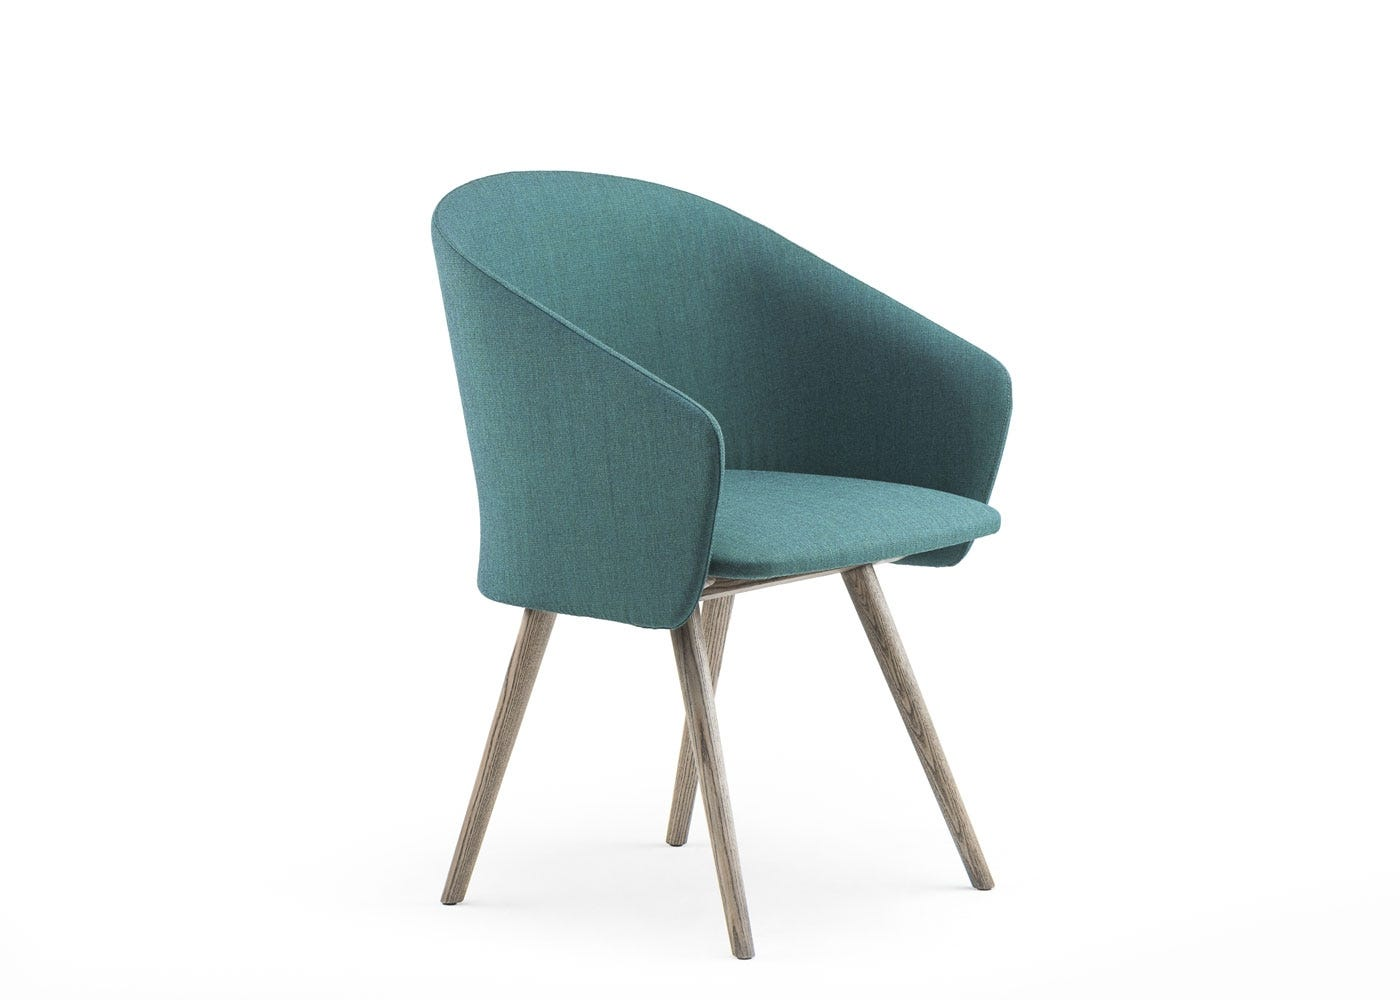 Saia dining chair upholstered in turquoise canvas - side view.